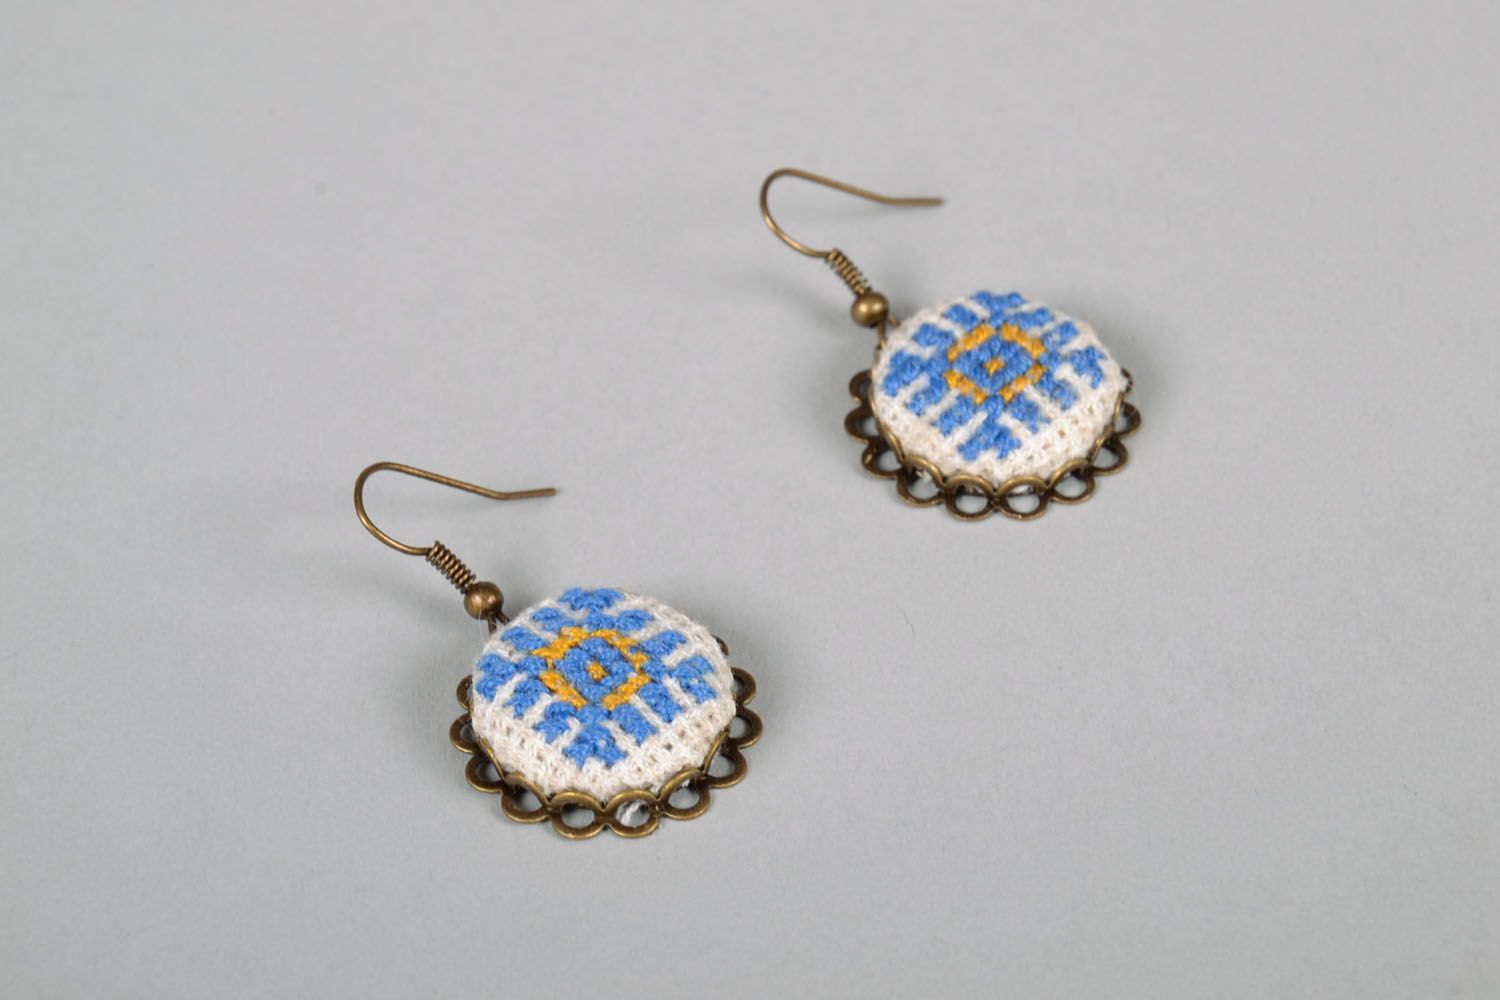 Pendant earrings with embroidery photo 4